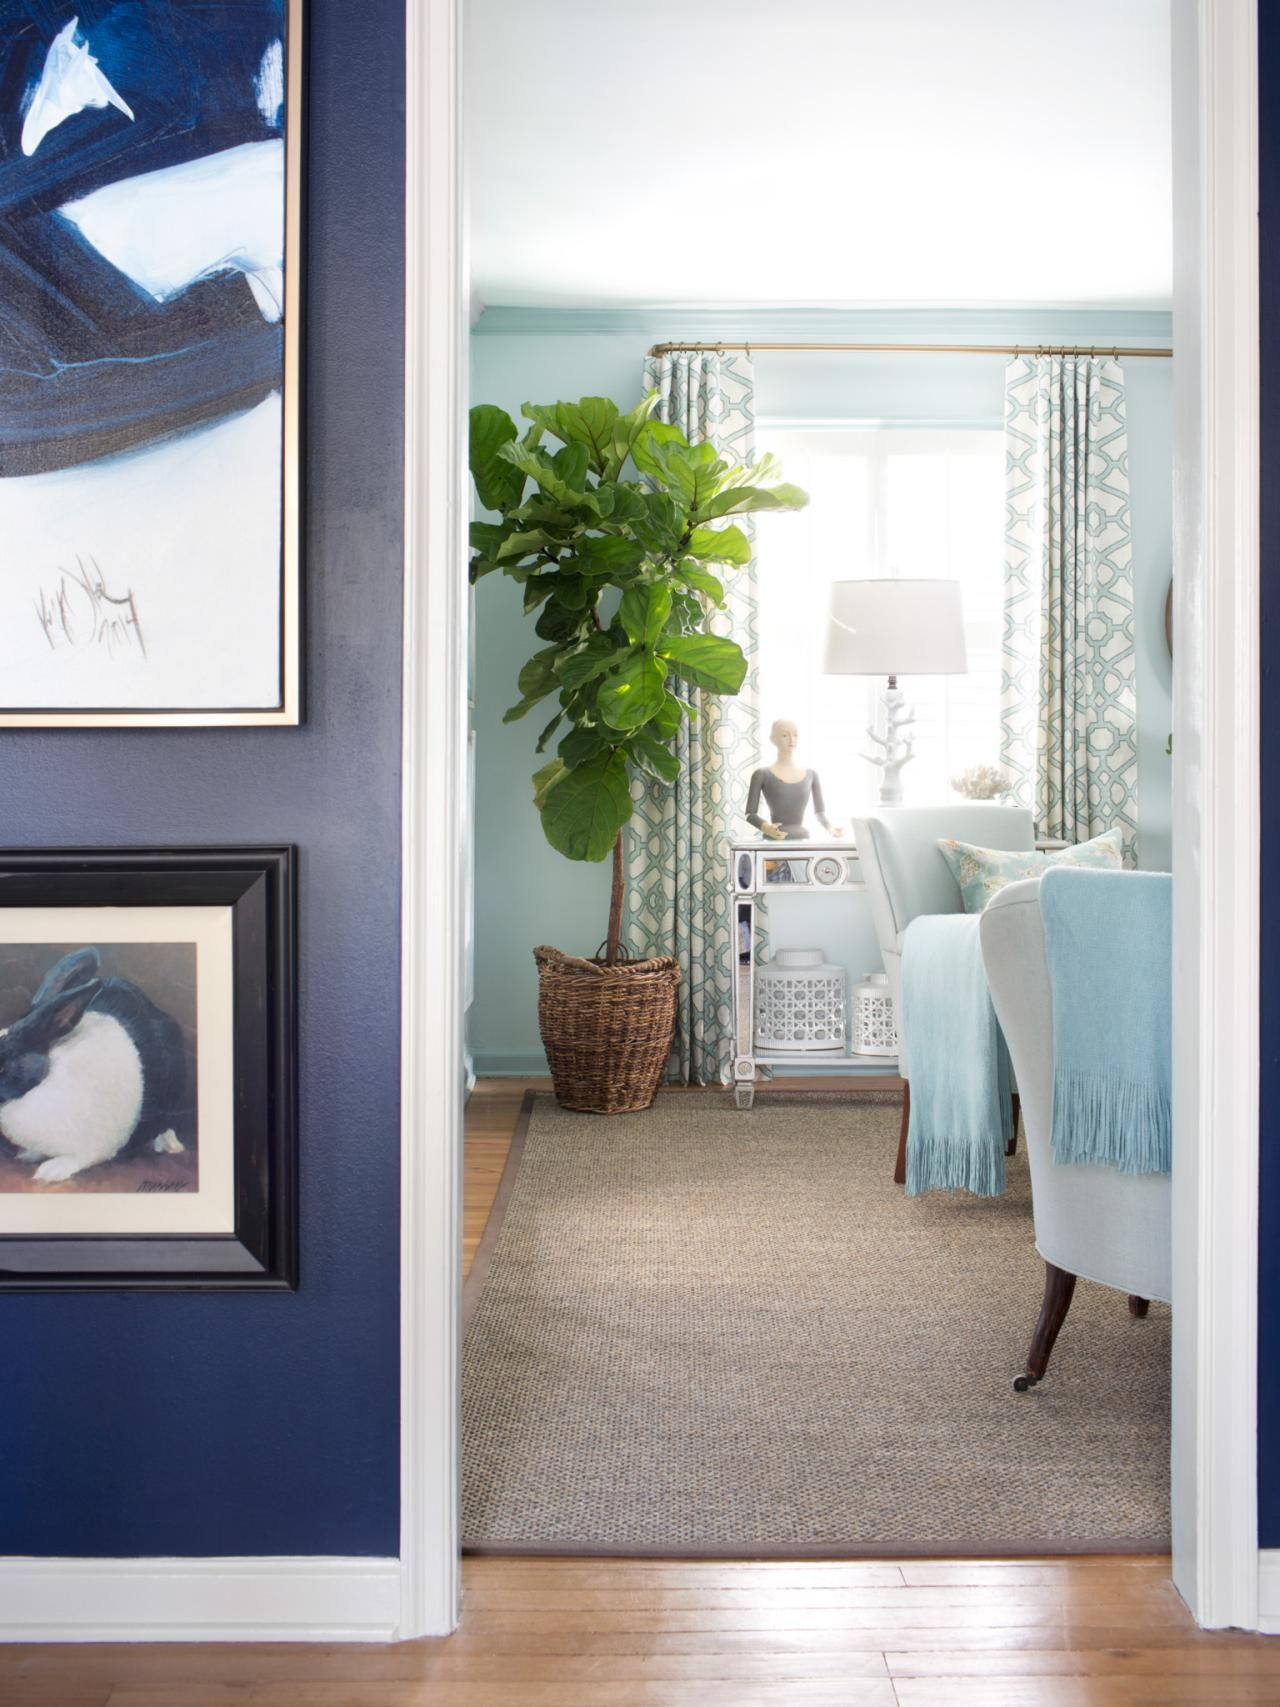 Small Blue Living Room Designs: Neighboring Spaces. Take Into Consideration The Hues Of